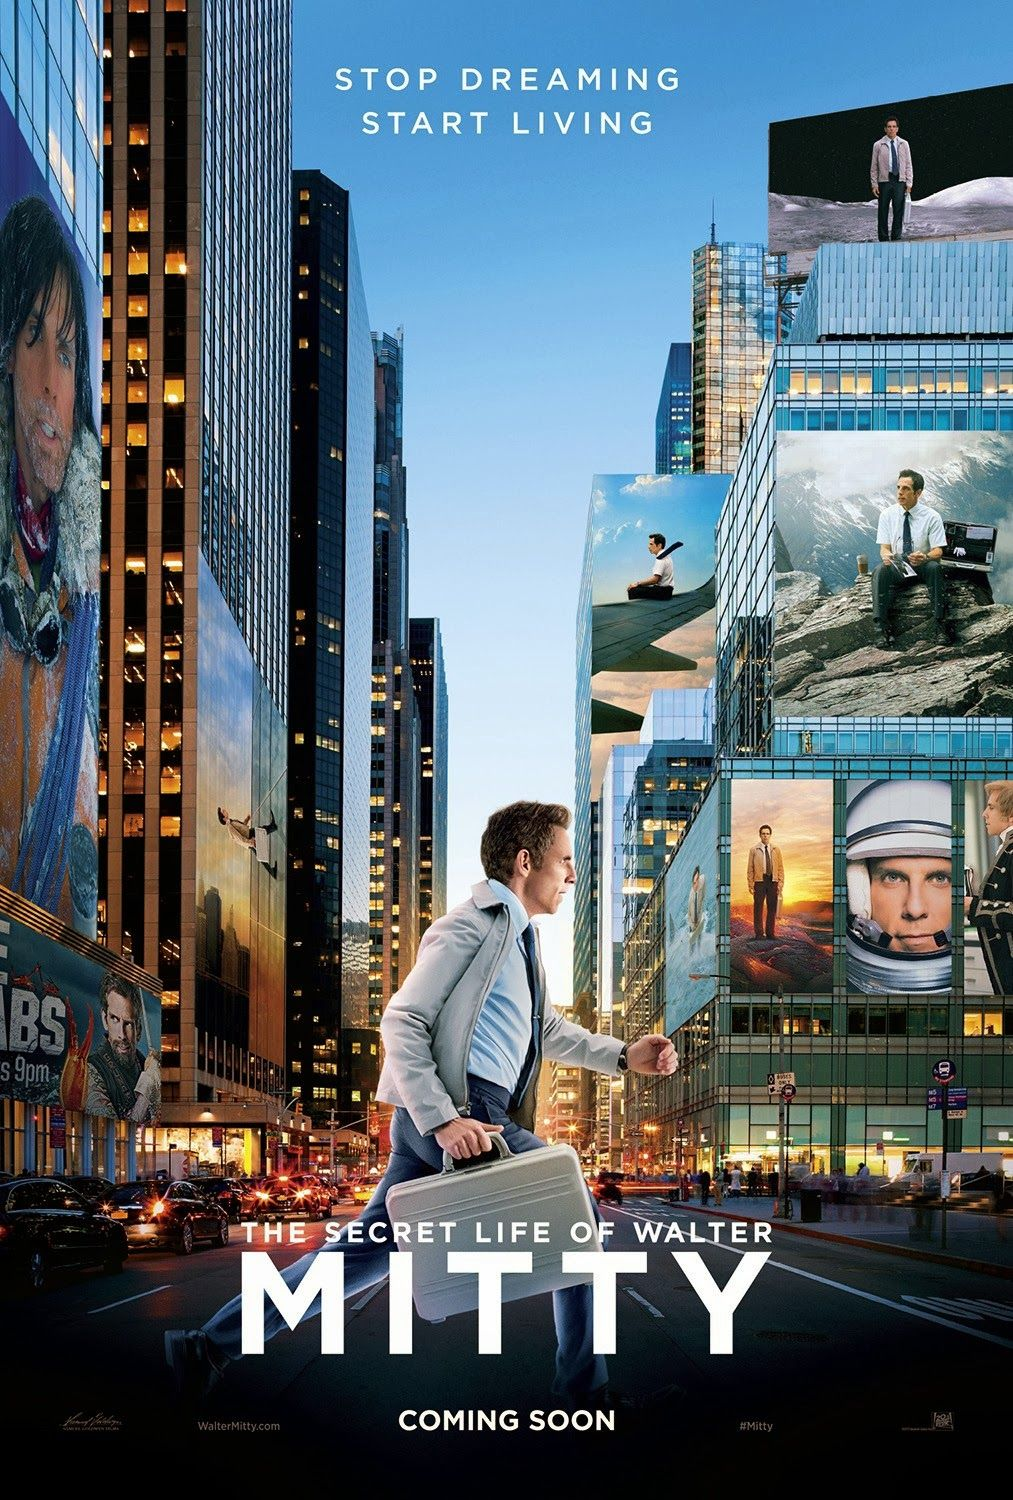 The Secret Life of Walter Mitty (2013). Great movie with great music of José González!